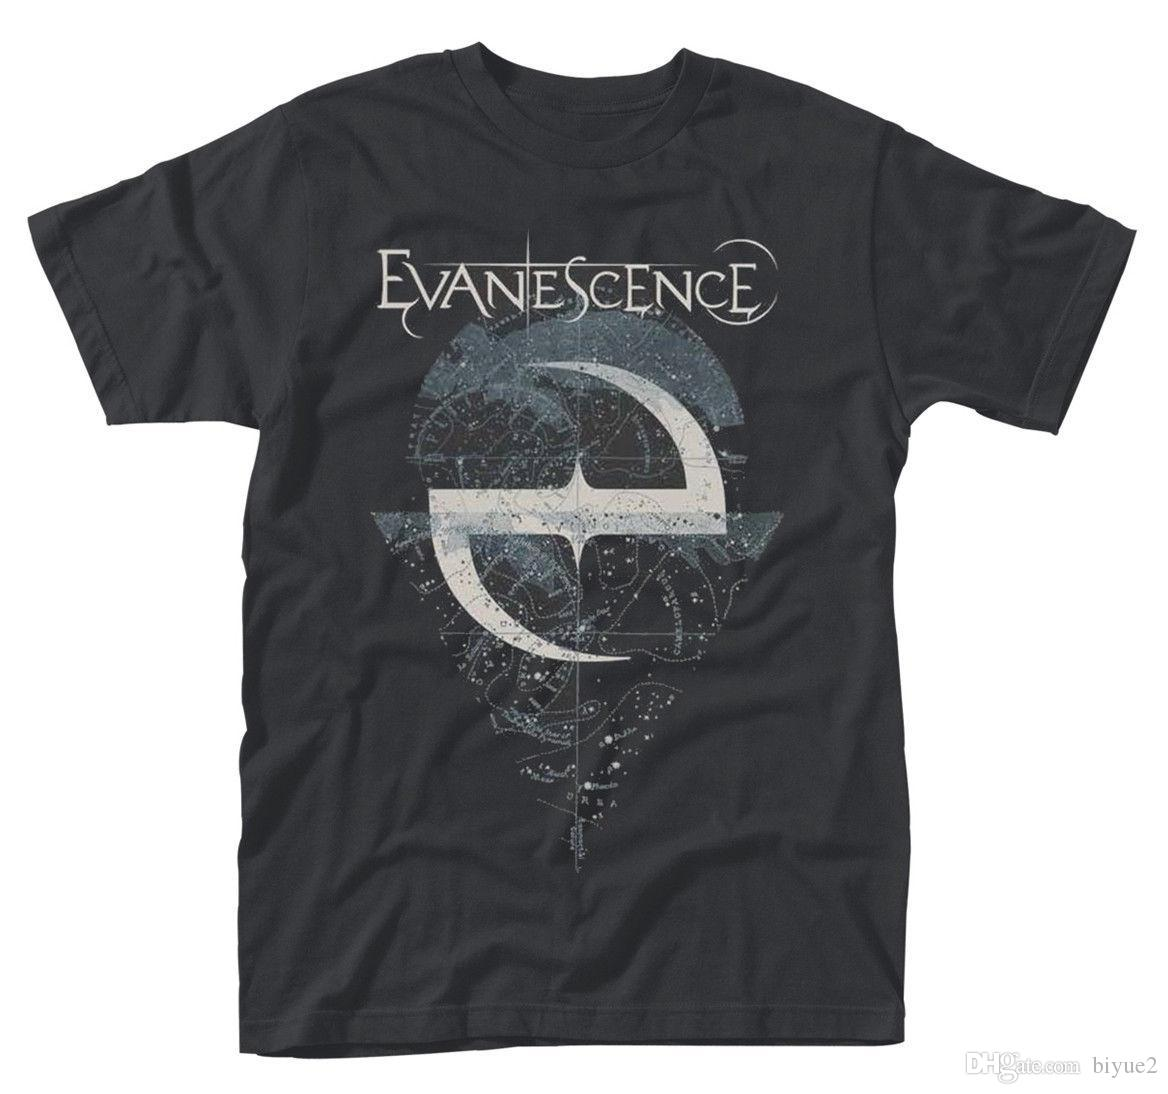 Evanescence 'Space Map' T-Shirt - NEUE OFFIZIELLE Neue Ankunft Männliche T-Shirts Casual Boy T-Shirt Tops Rabatte